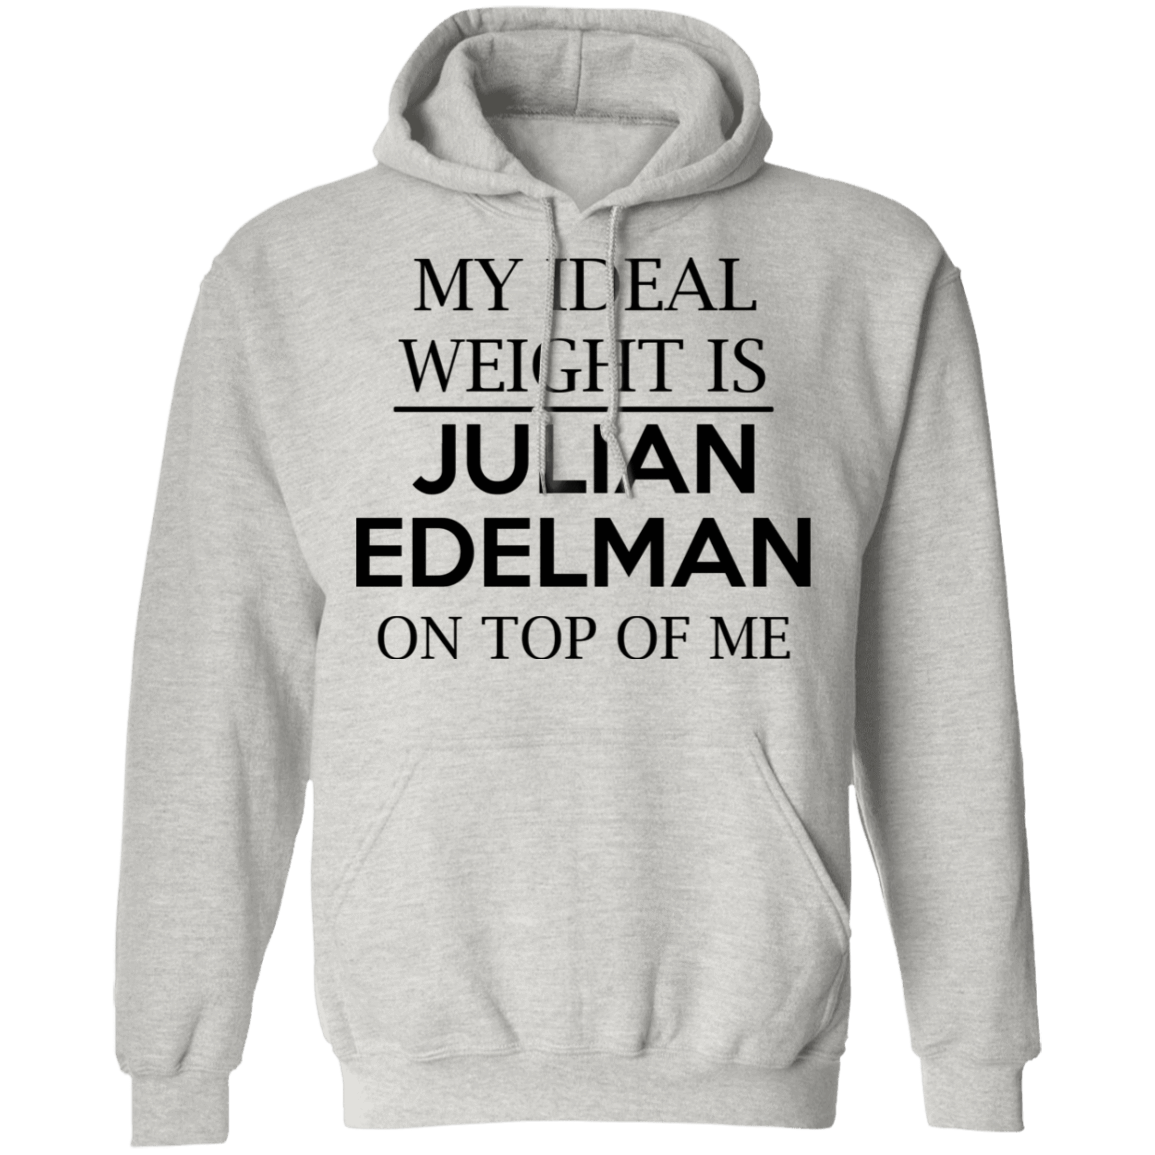 My Ideal Weight Is Julian Edelman On Top Of Me T-Shirts, Hoodies, Tank 541-4748-79345117-23071 - Tee Ript